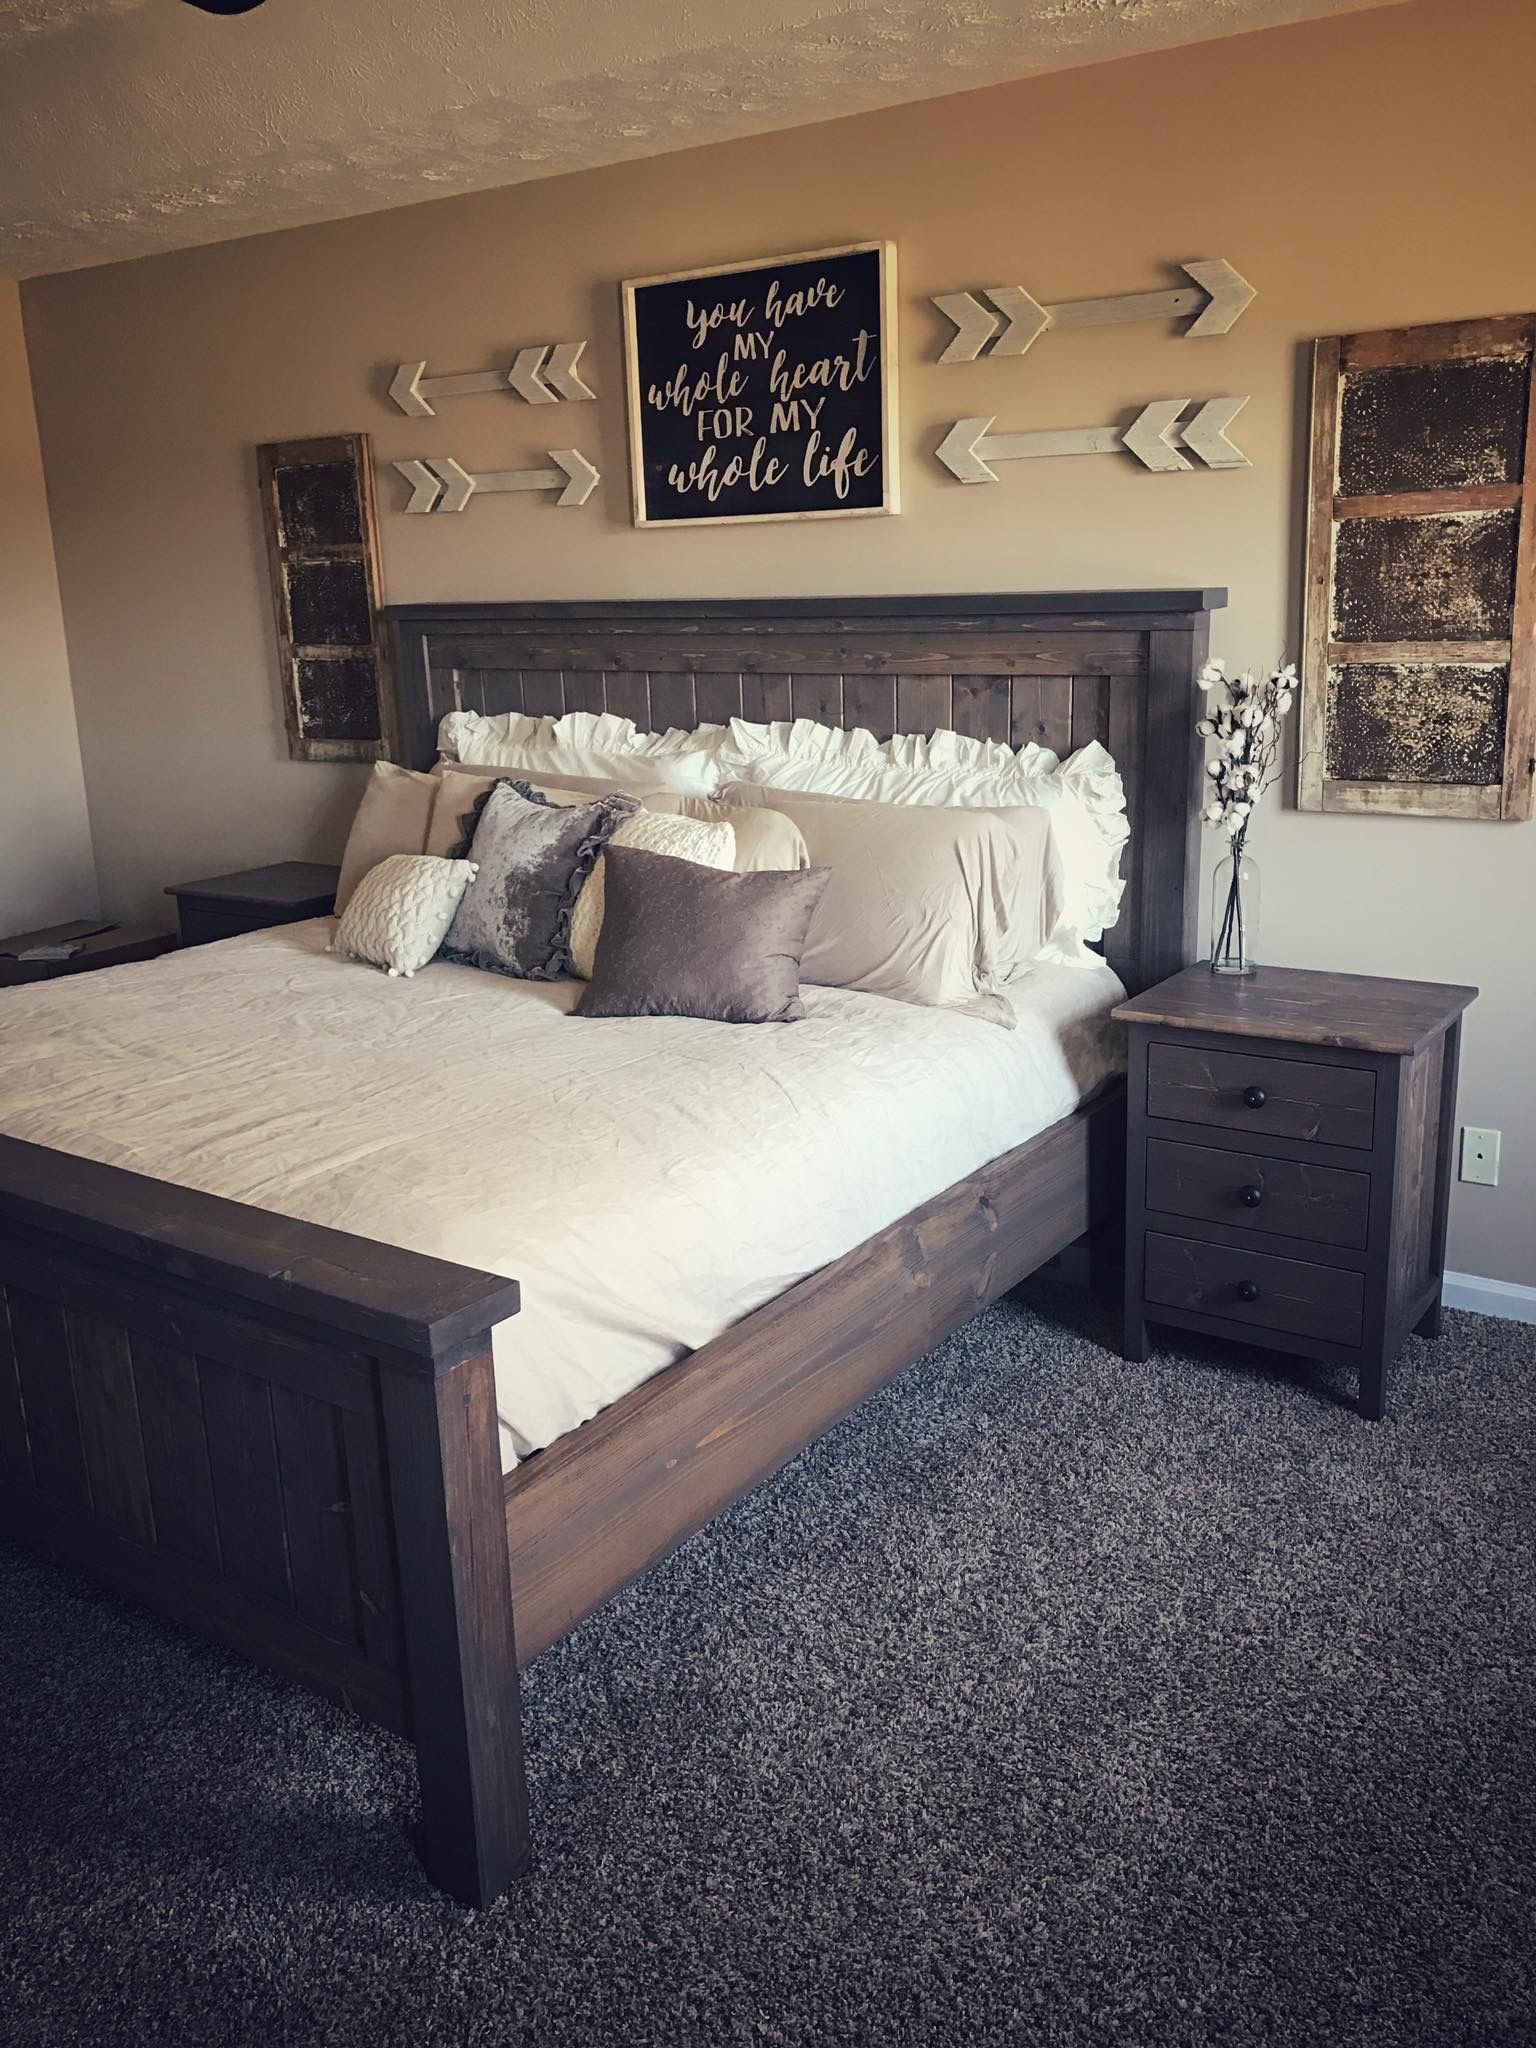 Bedroom furniture outlines may truly add  cozy component to your space irrespective of whether you live in loft or apartment suite  ll be able get also pin by chandni verma on home decorating pinterest bedrooms rh